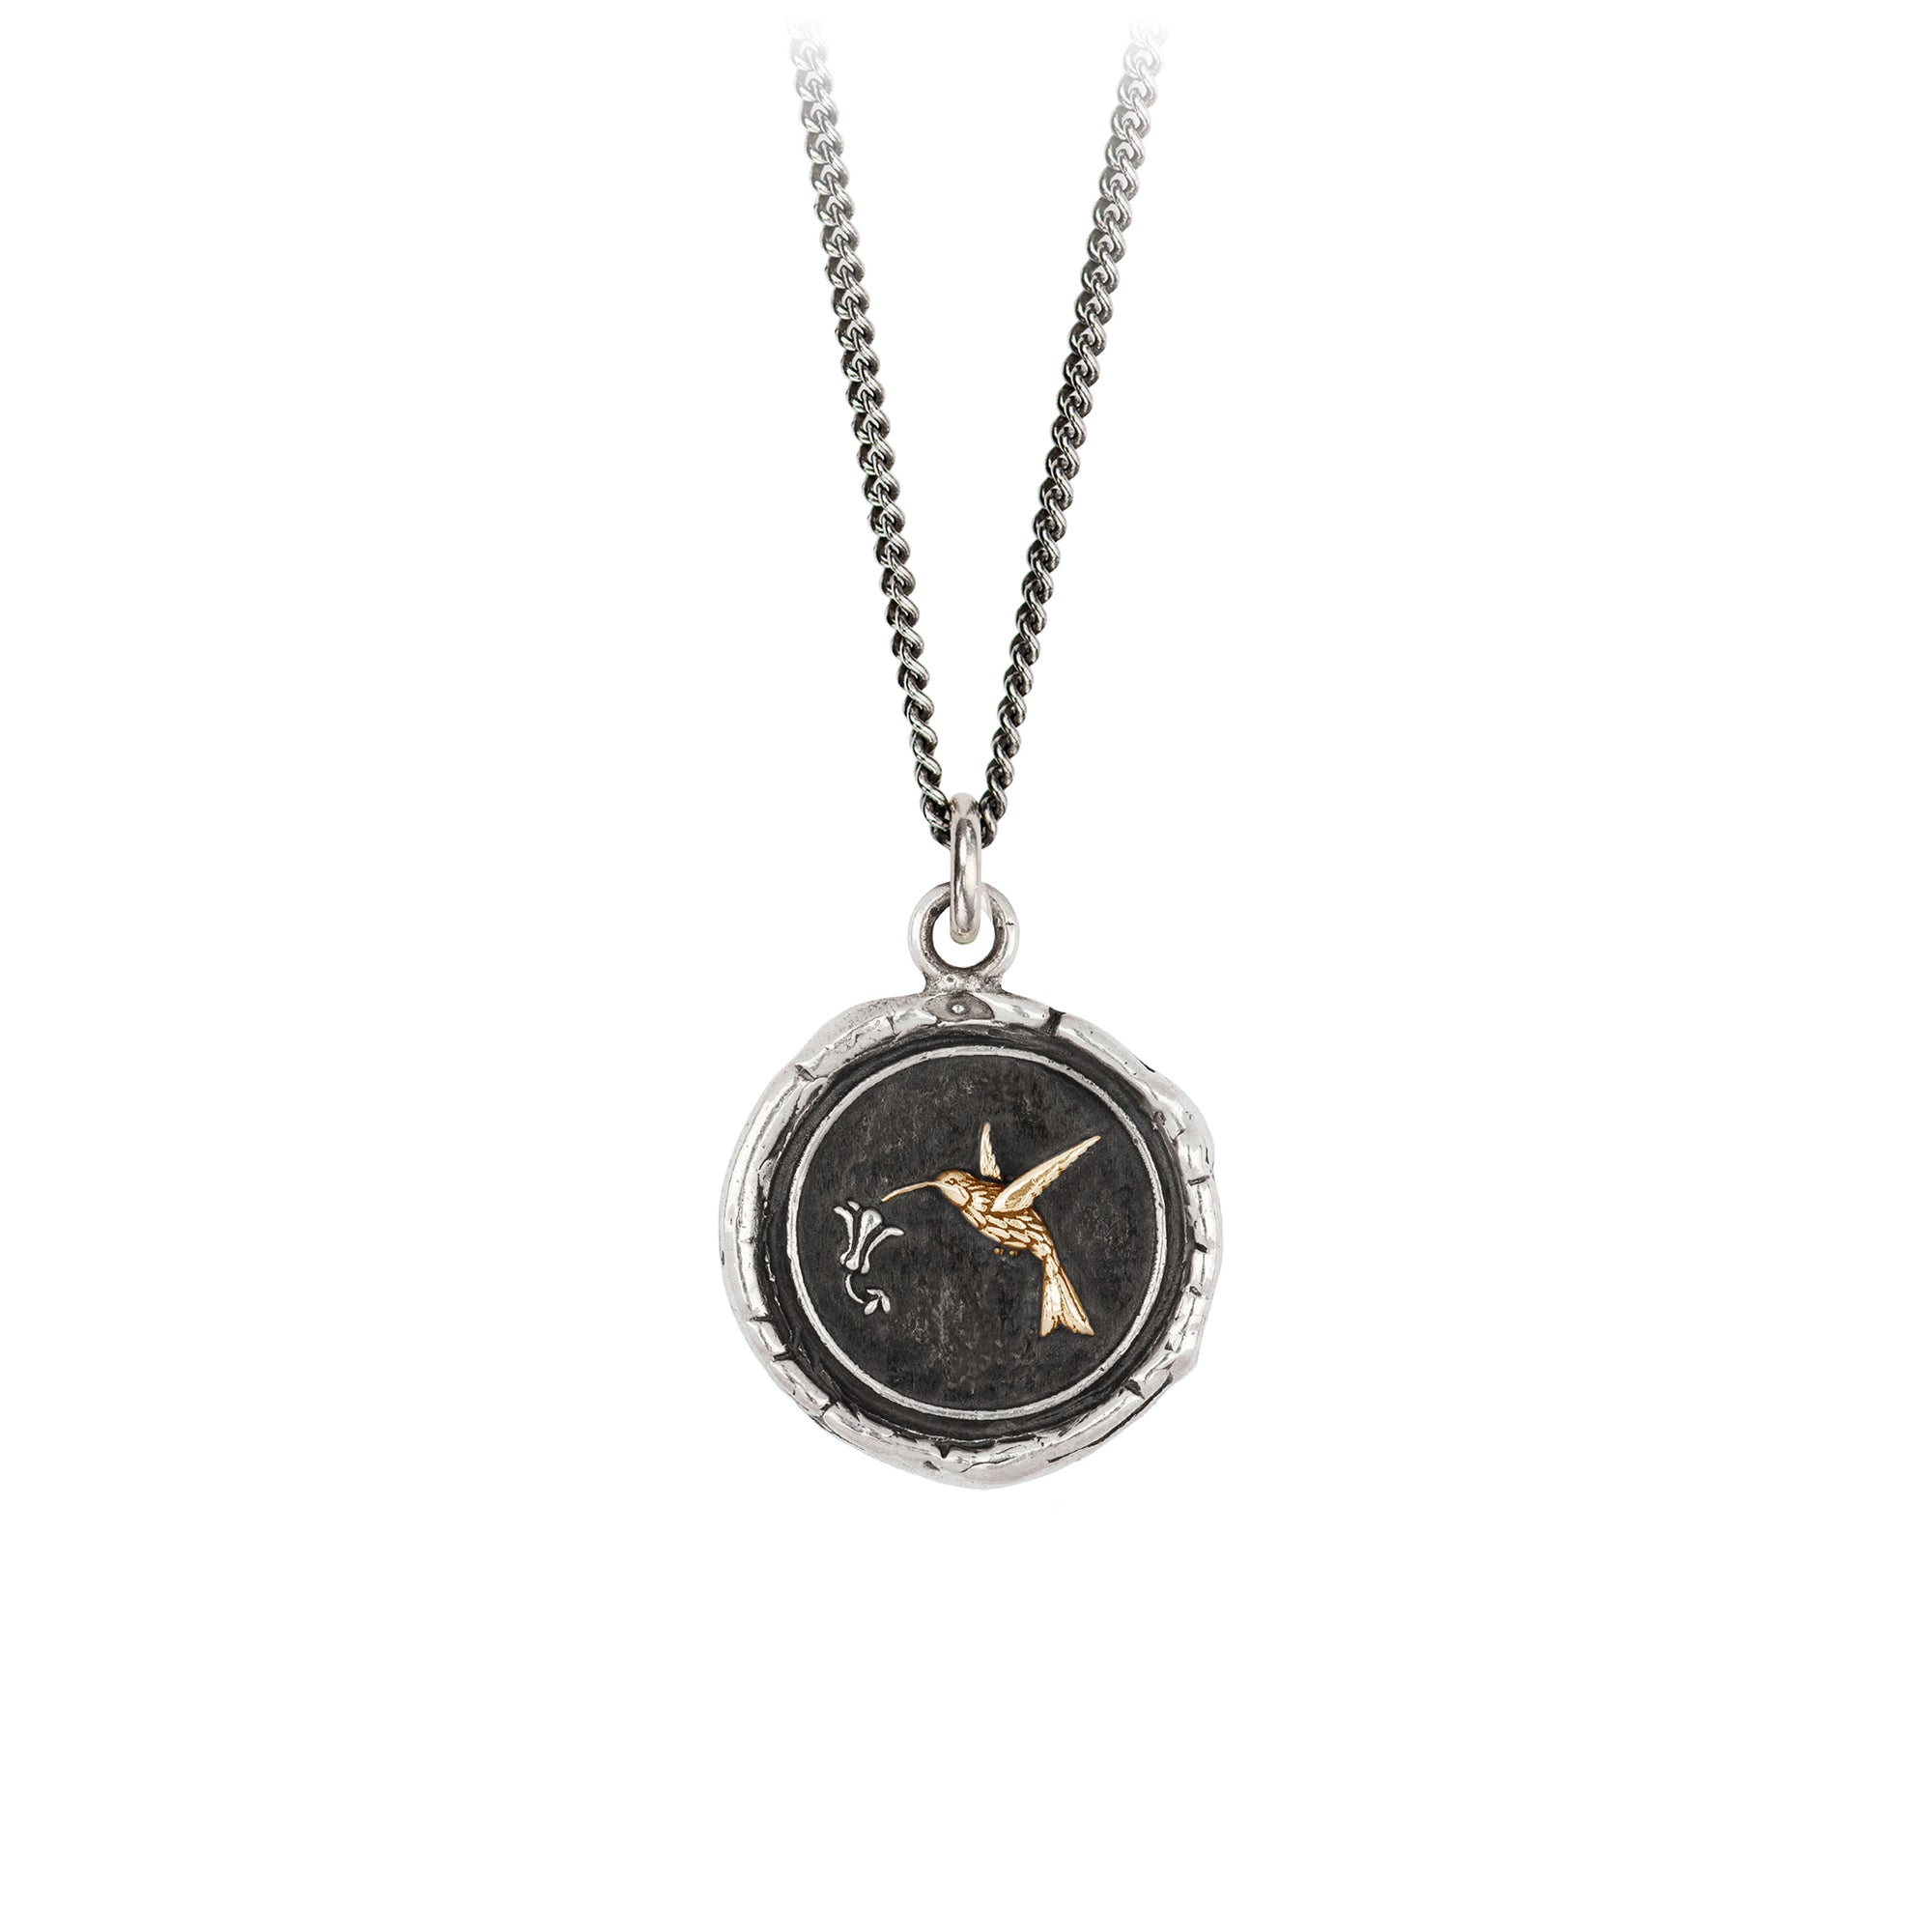 Pyrrha 14K Gold on Silver Hummingbird Talisman Necklace